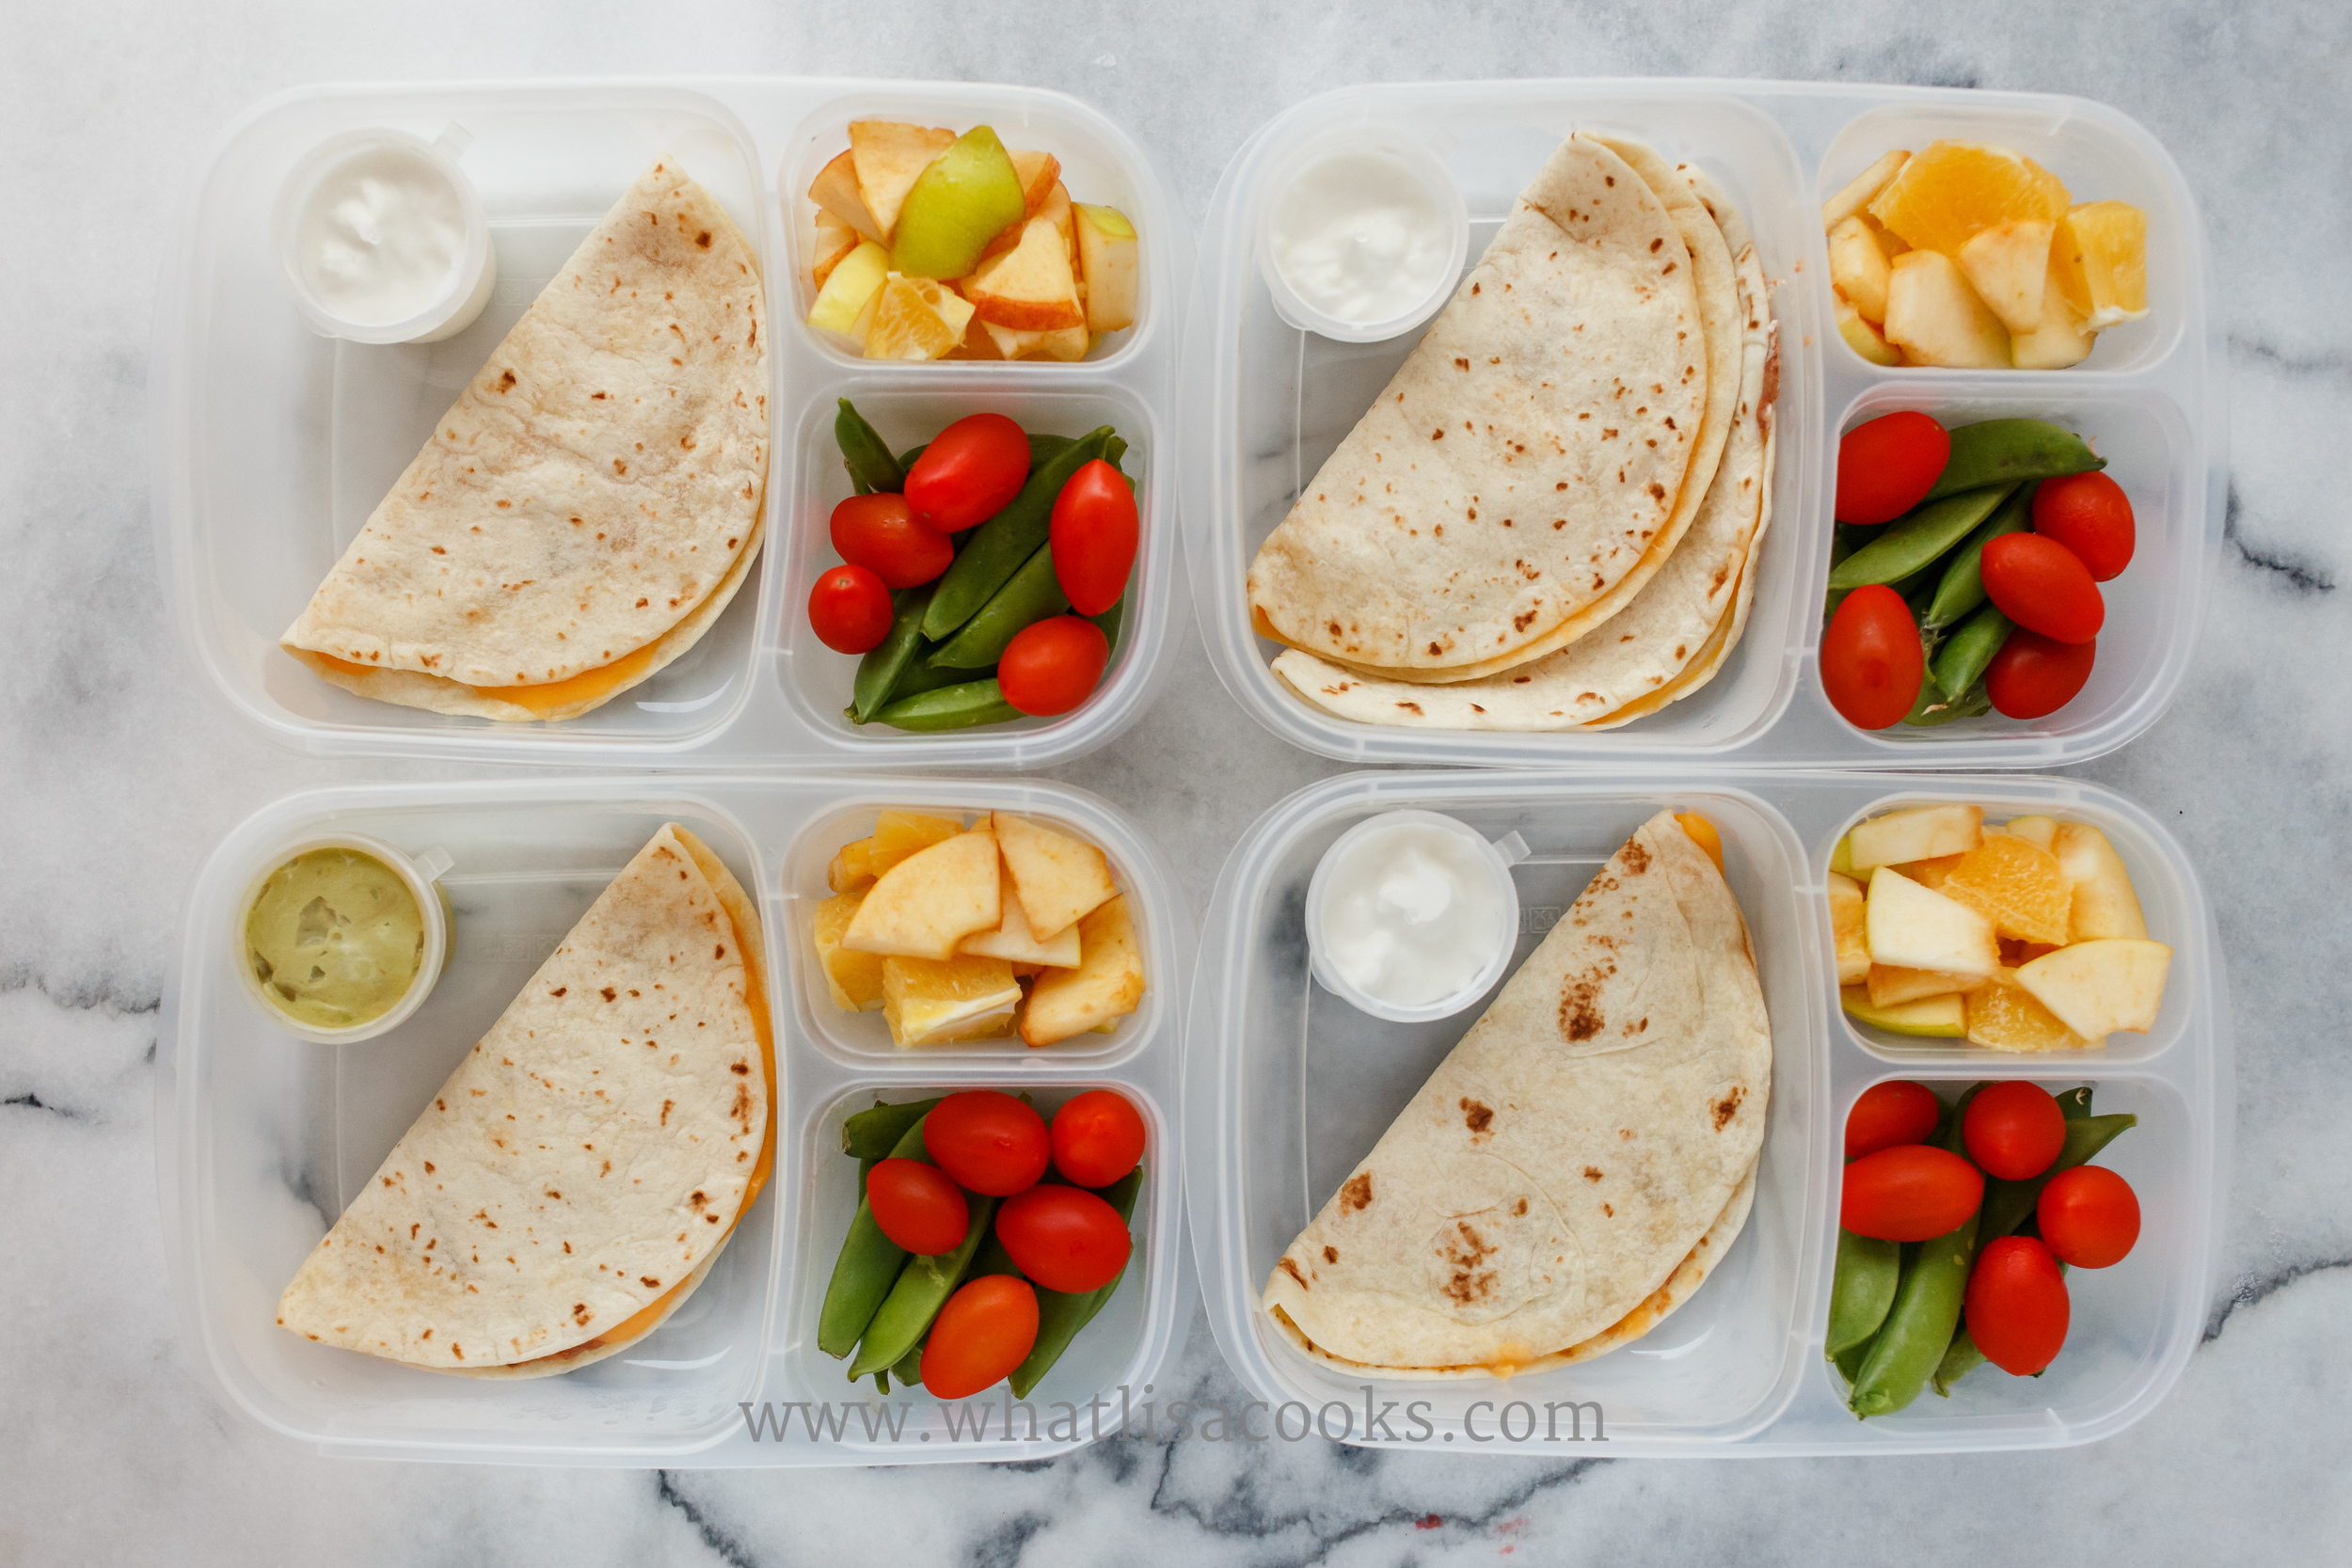 Quesadillas, two have beans and two have chicken.  Three have sour cream for dipping and one has guacamole.  Plus apple bites, sugar snap peas, and tomatoes.